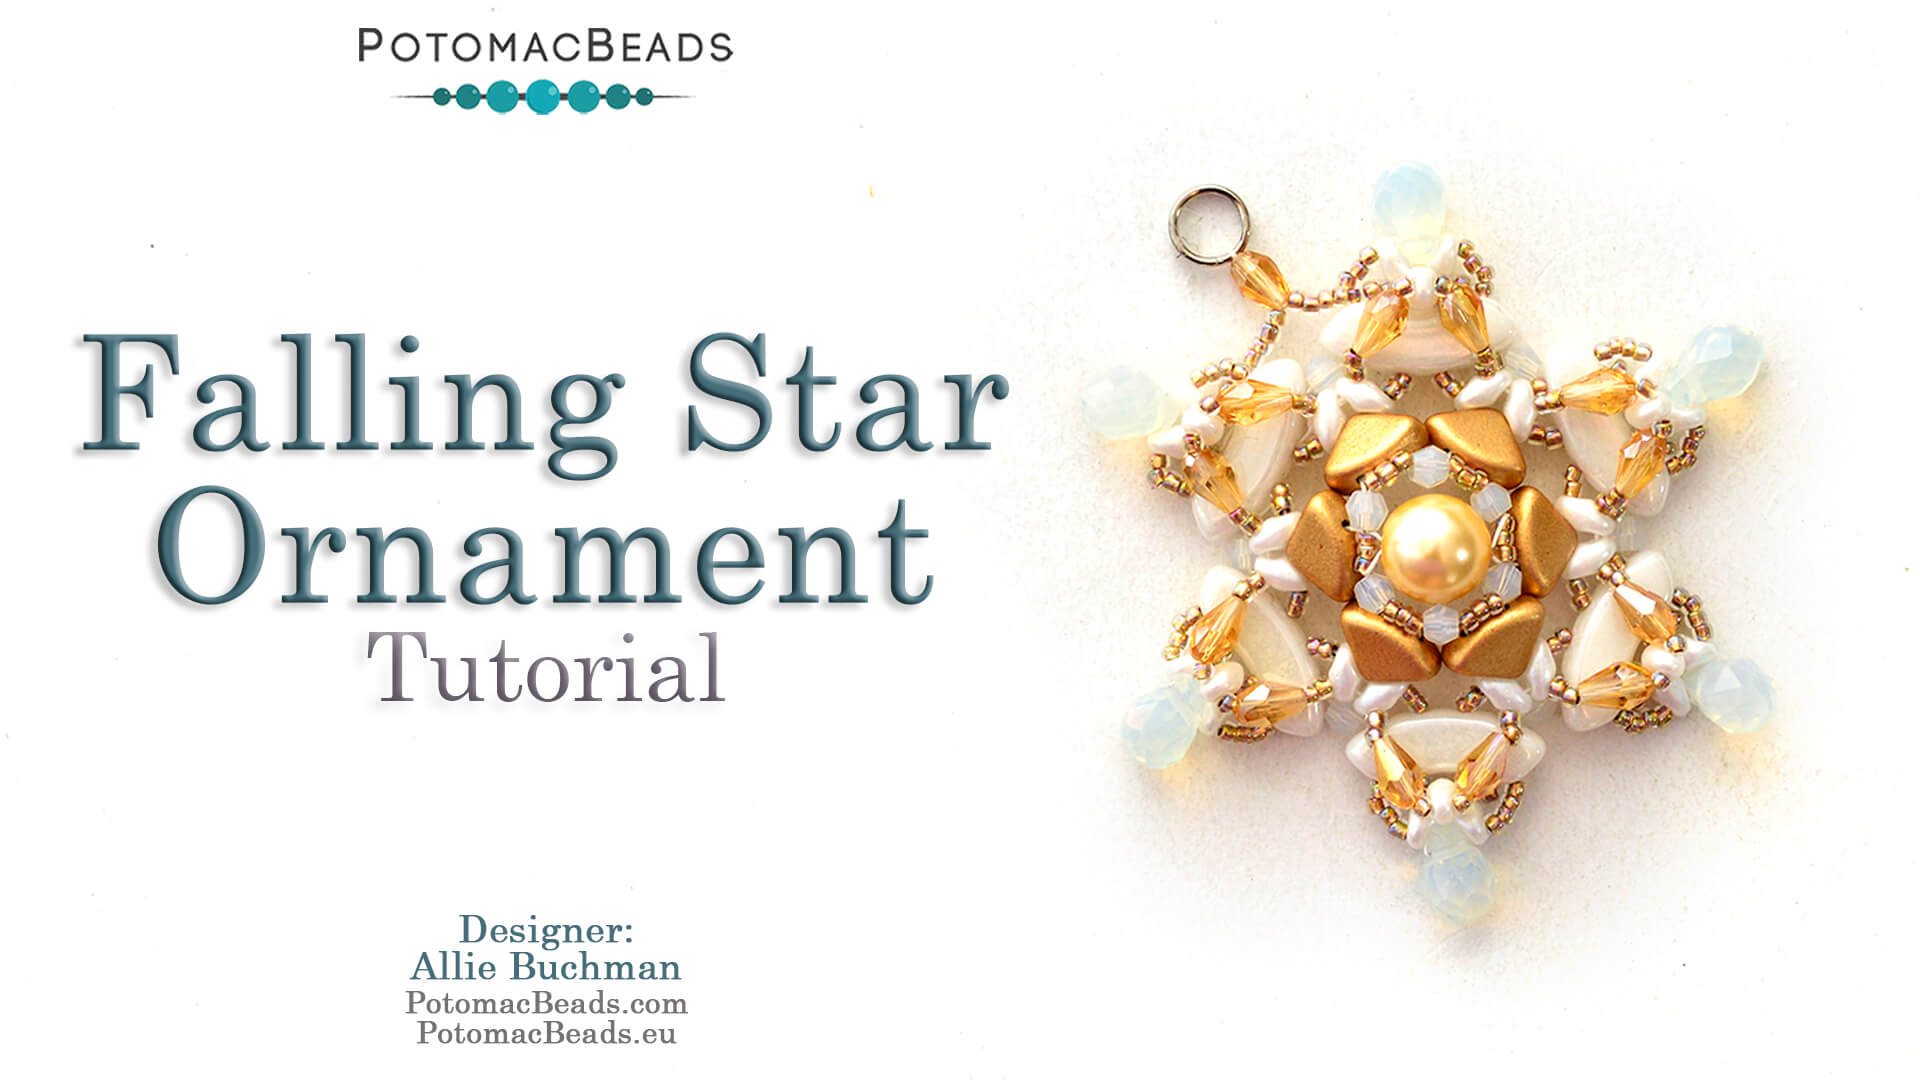 How to Bead Jewelry / Videos Sorted by Beads / QuadBow & PieDuo Bead Videos / Falling Star Ornament Tutorial